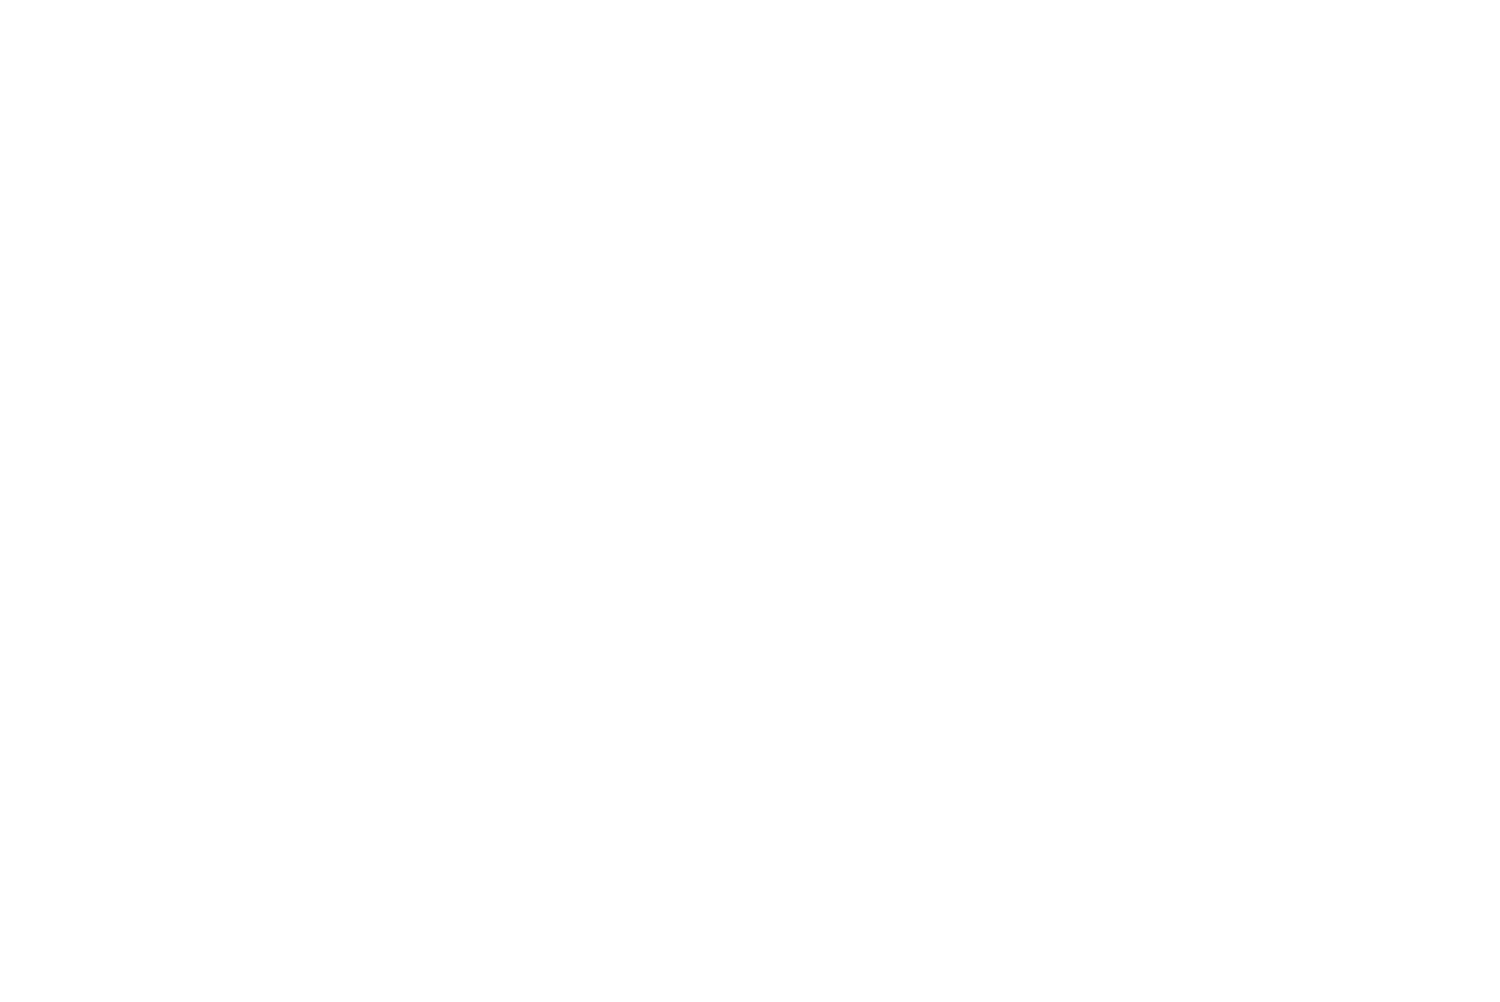 Elements Music & Arts Festival